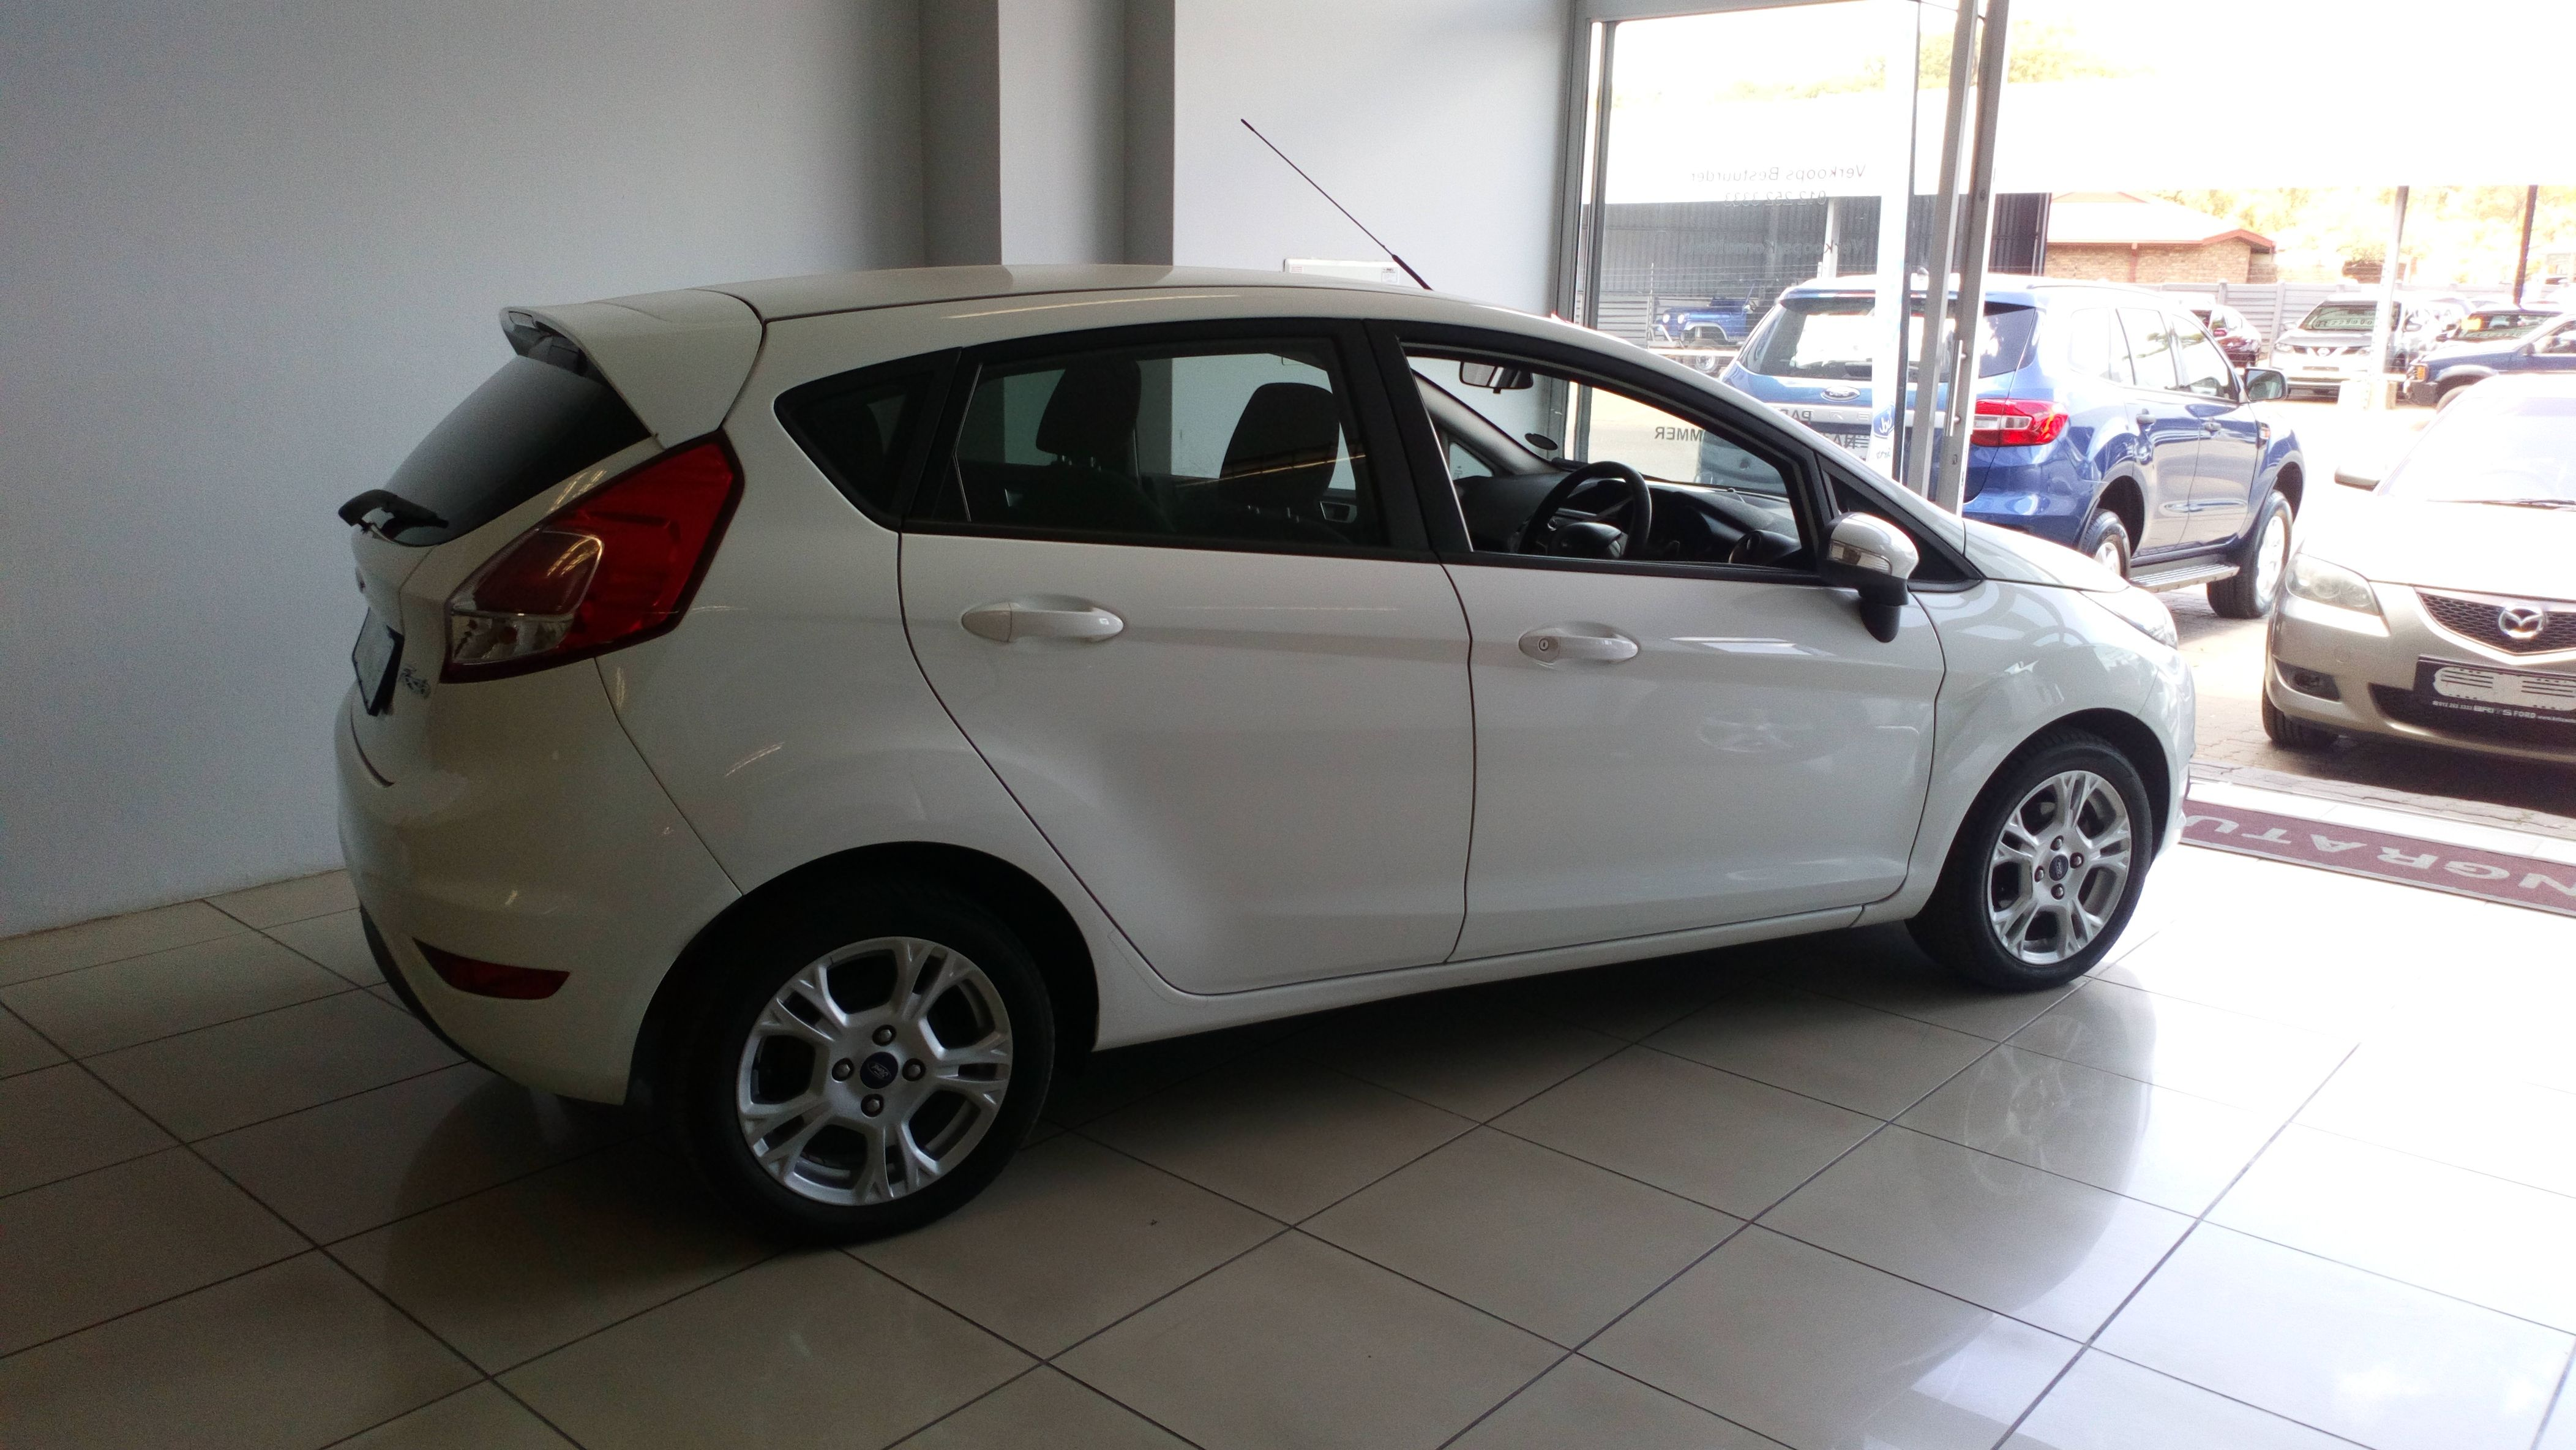 Ford Fiesta 1 6 Trend 2013 Turbo Diesel For R129 900 Excluding Vat Warranty On The Road Can Find Me At Brits Ford Can Contact Me On 0 Ford Fiesta Ford Turbo